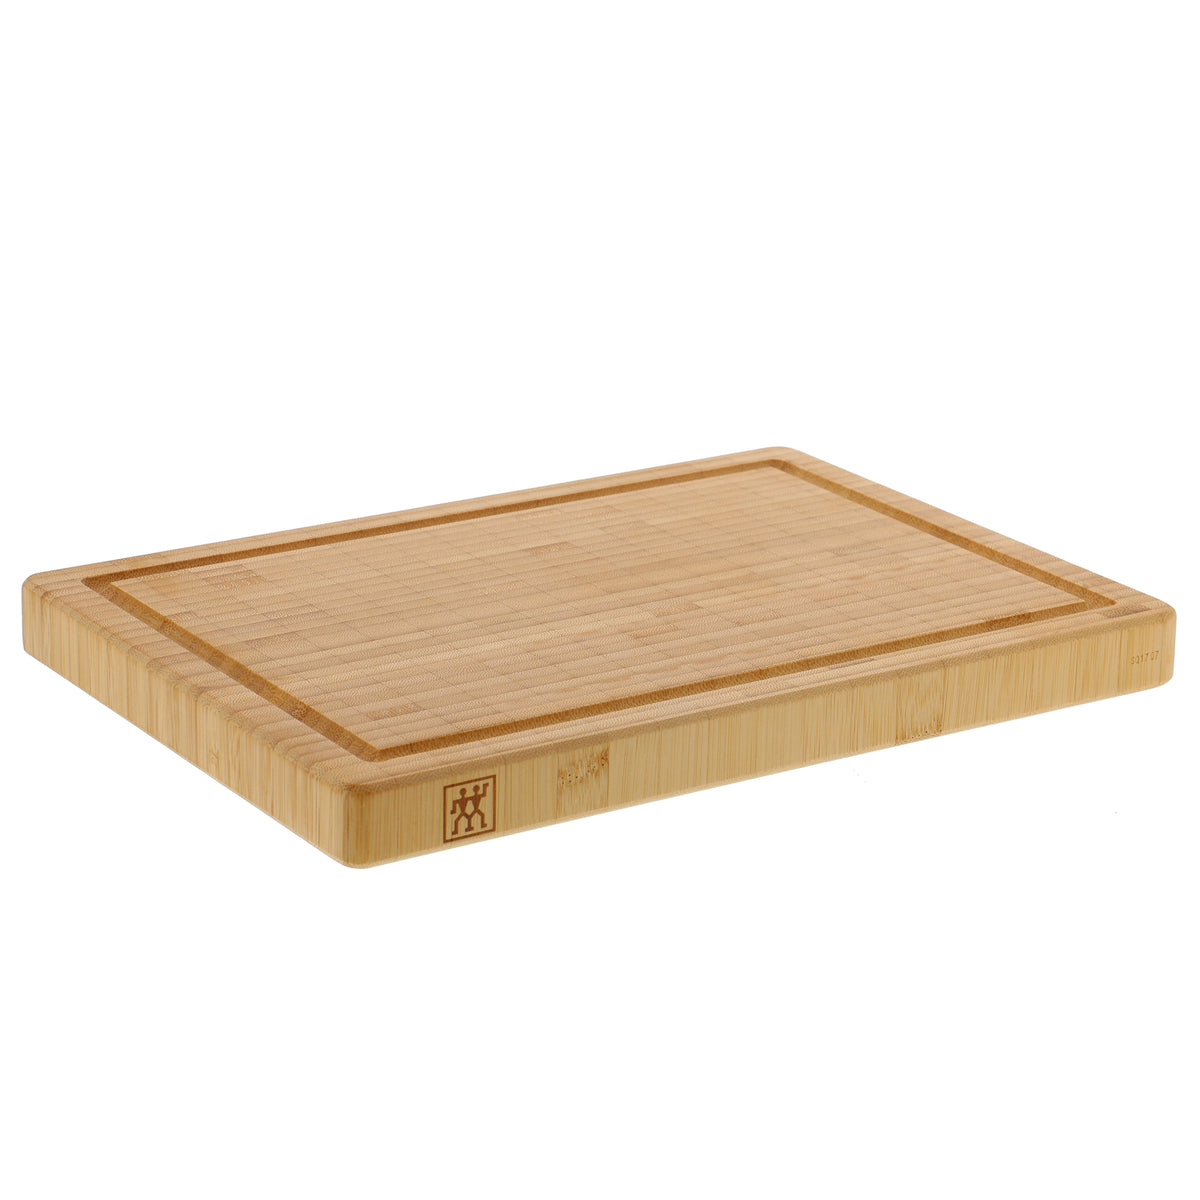 Zwilling J.A. Henckels Bamboo Cutting Board